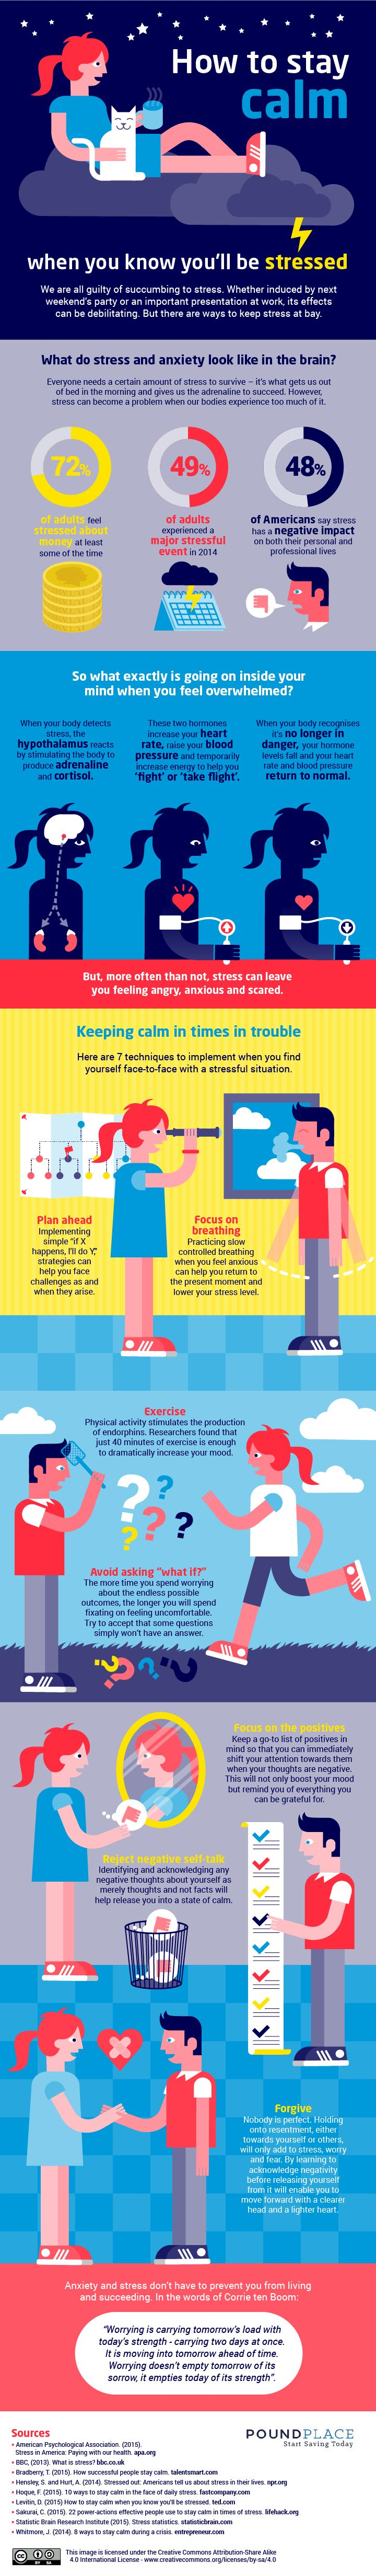 INFOGRAPHIC: Here's what science has to say about remaining chill under pressure